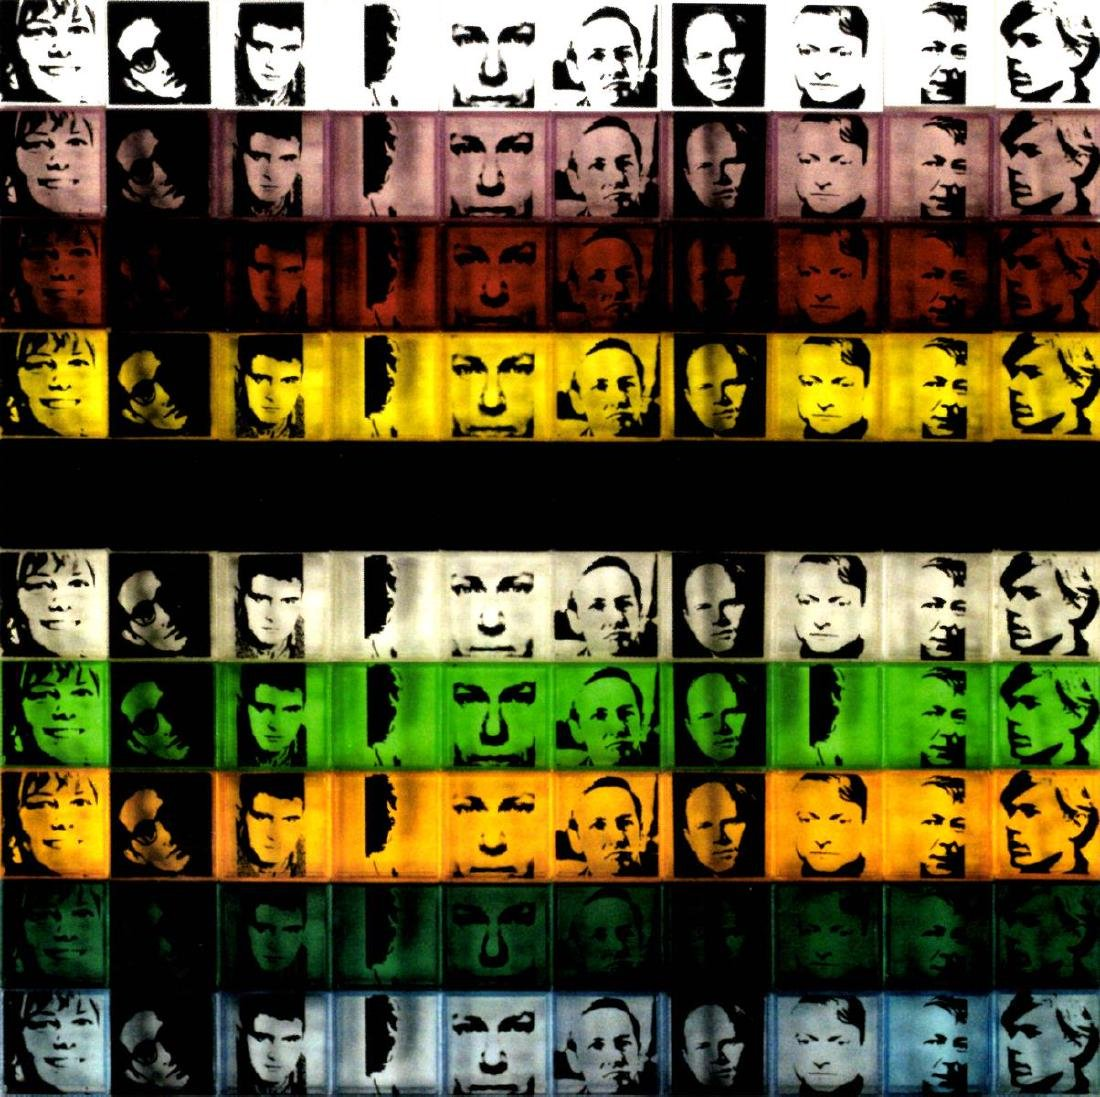 Andy Warhol - Portraits of the Artists